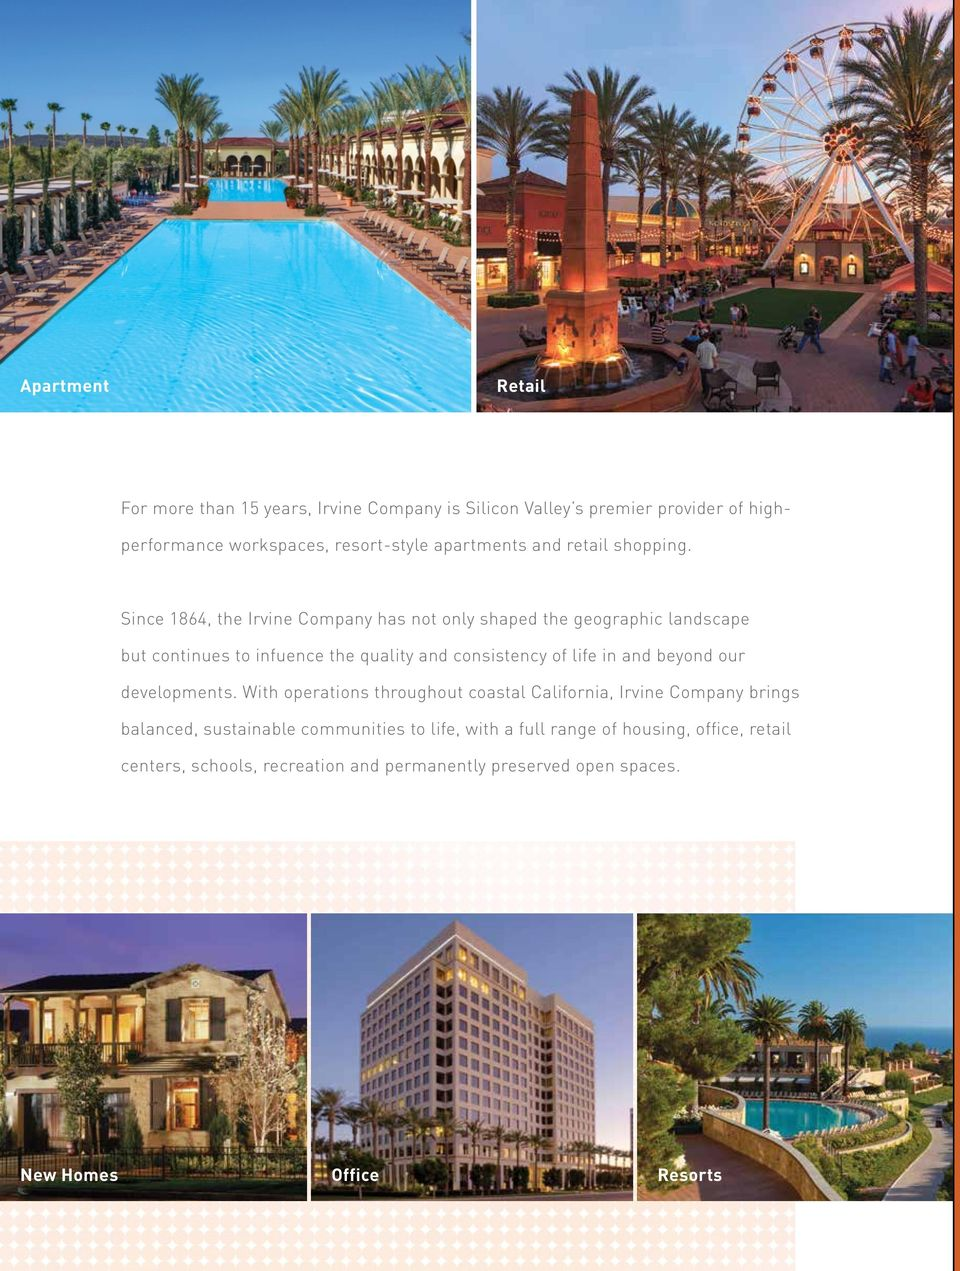 Since 1864, the Irvine Company has not only shaped the geographic landscape but continues to infuence the quality and consistency of life in and